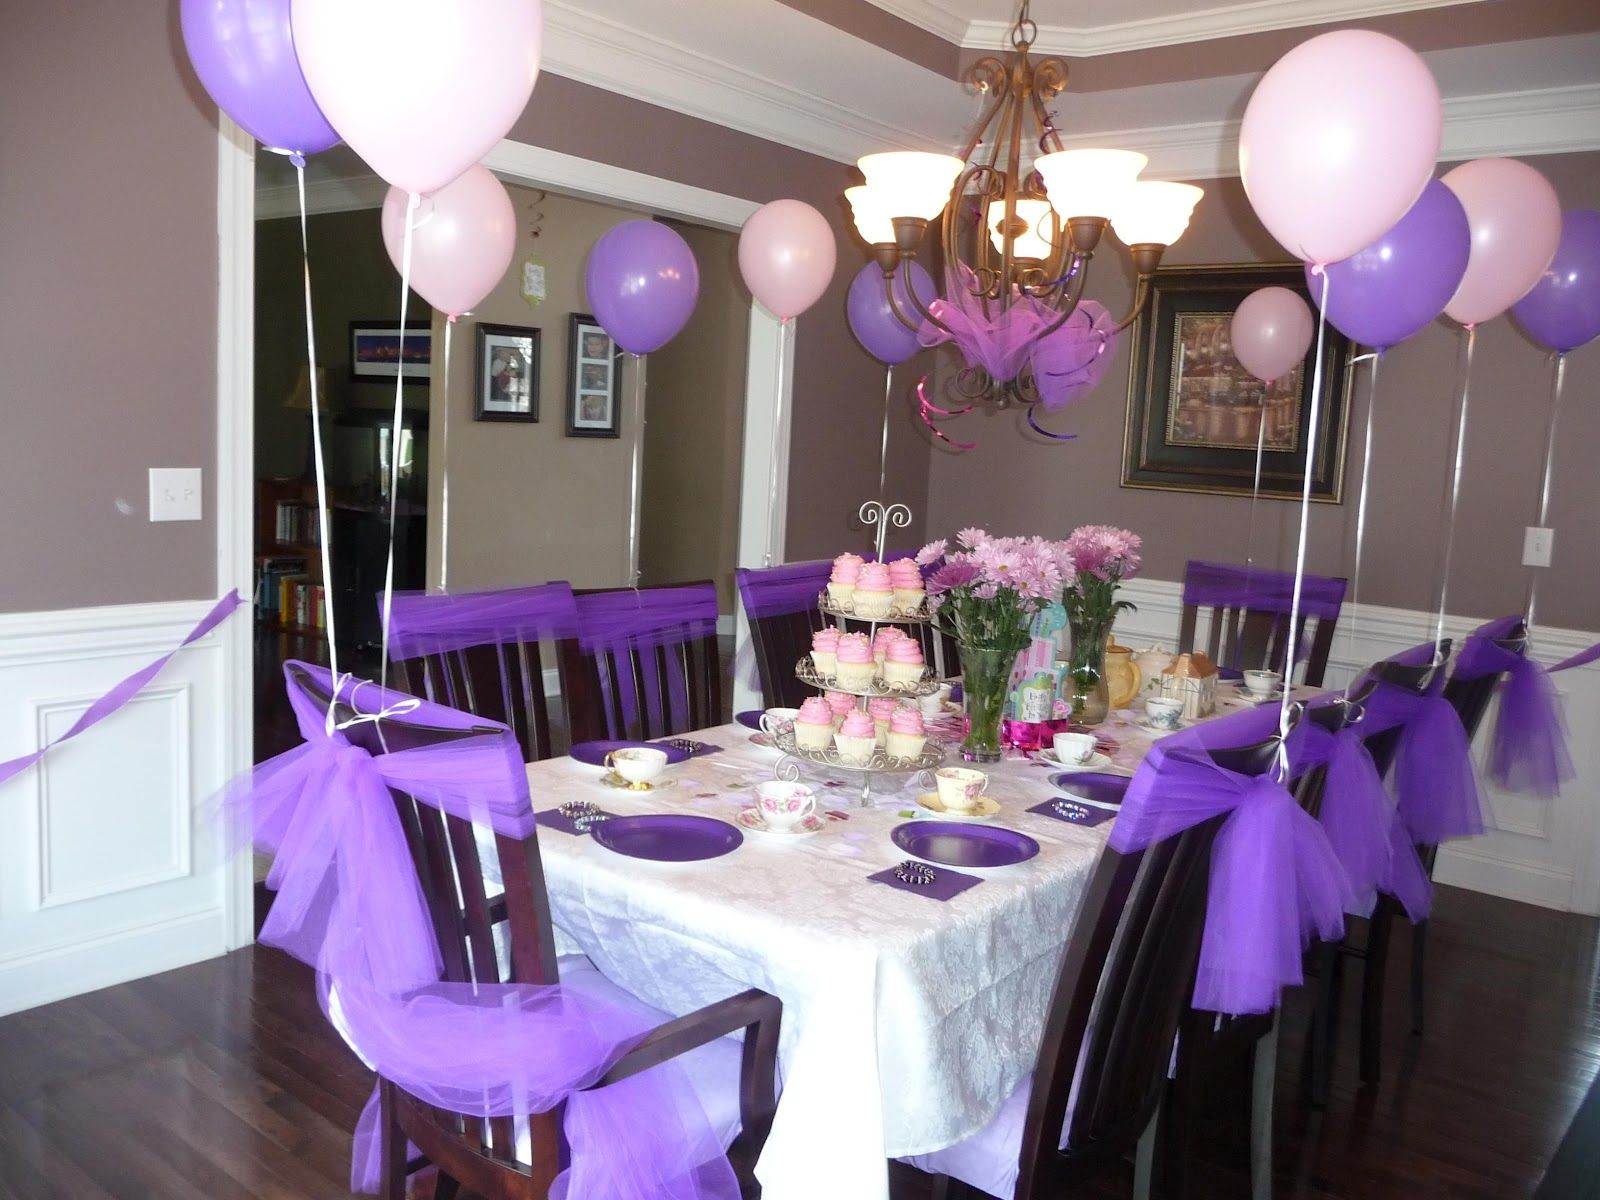 Decoration For Party Lavender Table Decorations Trianglemommies Throwing A